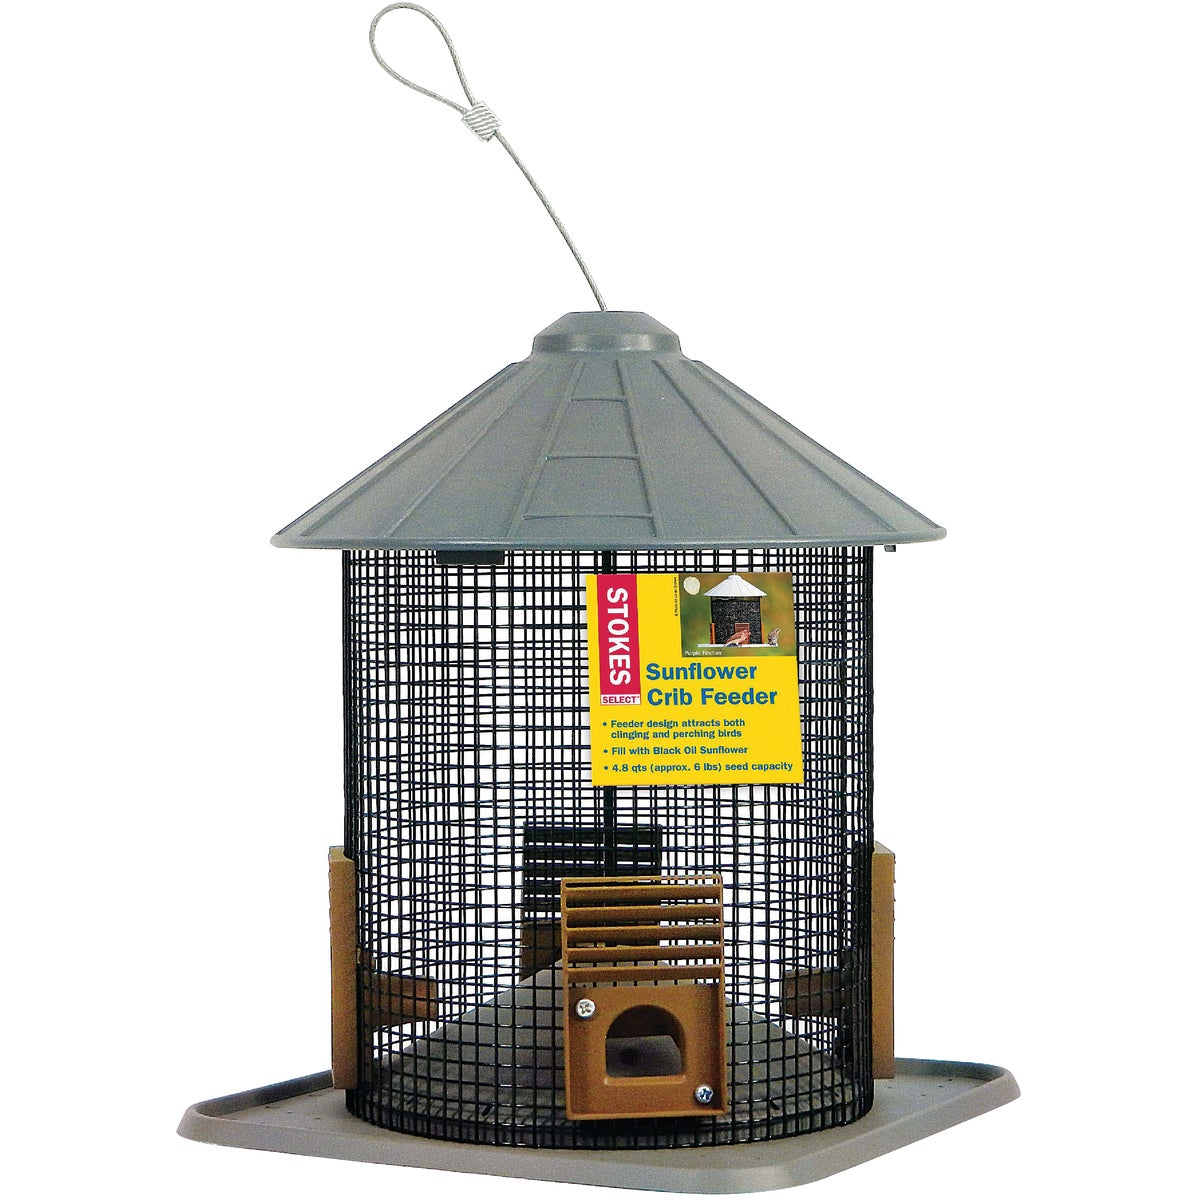 SUNFLOWER CRIB FEEDER - 38220 by Hiatt Mfg